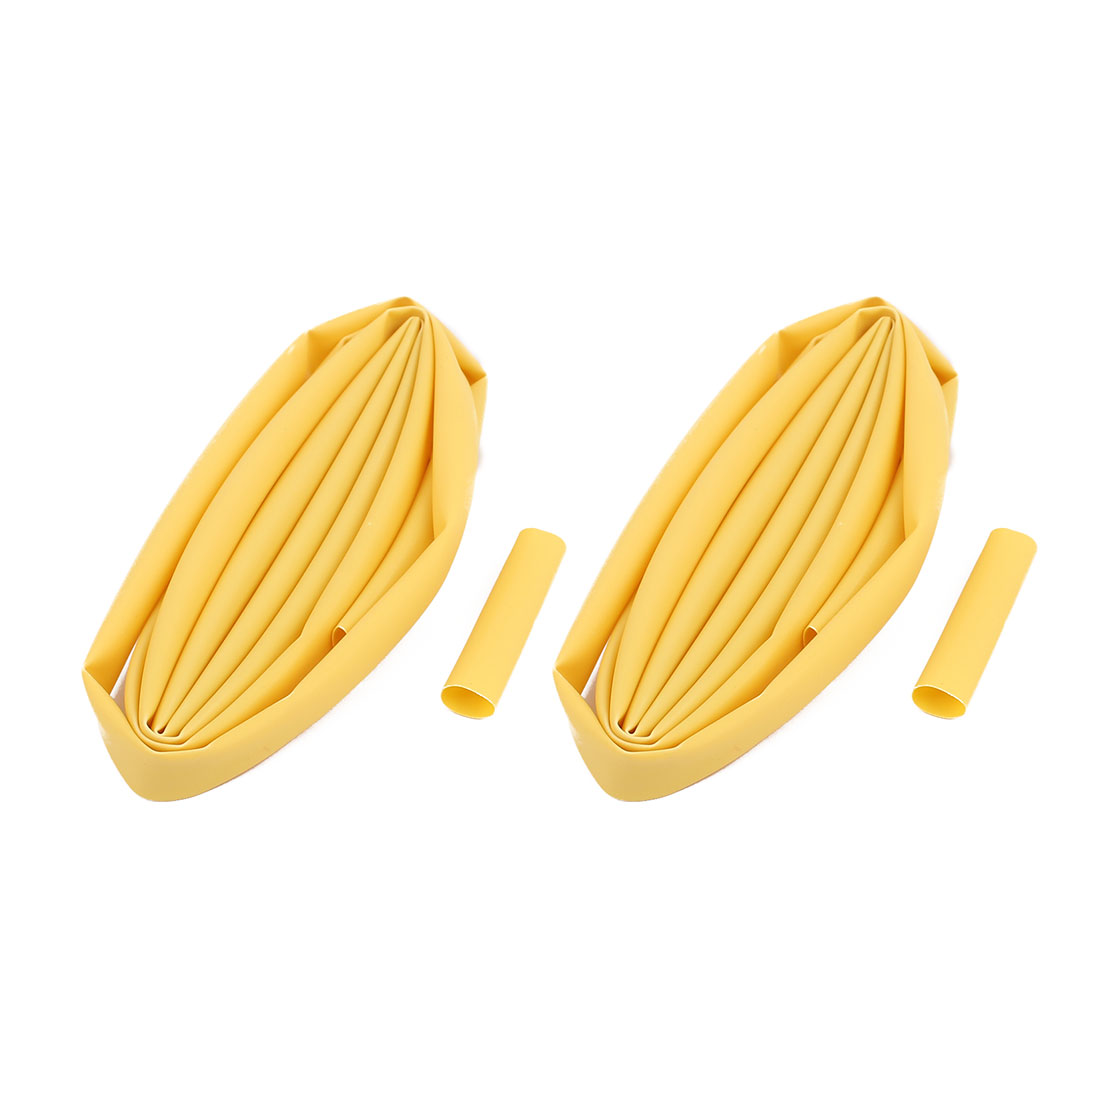 2Pcs 6mm Dia 2:1 Shrink Ratio Shrinkable Tube Heat Shrink Tubing Tube Sleeving Yellow 1M Length